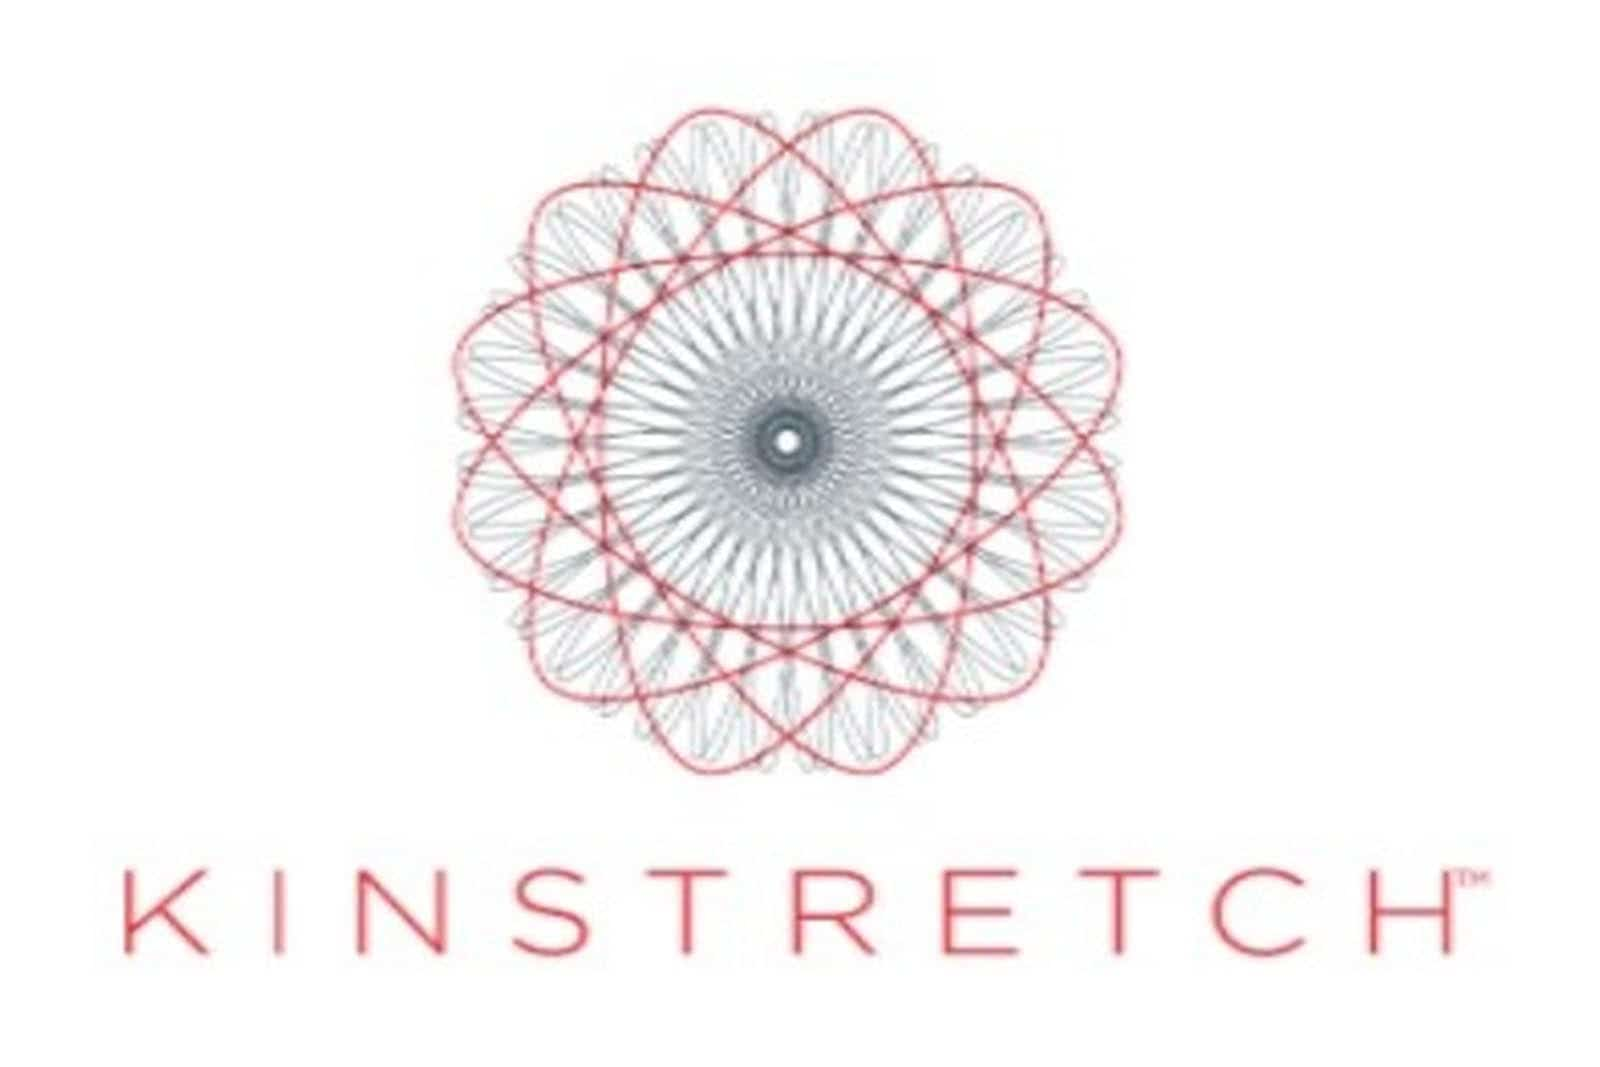 What is Kinstretch?